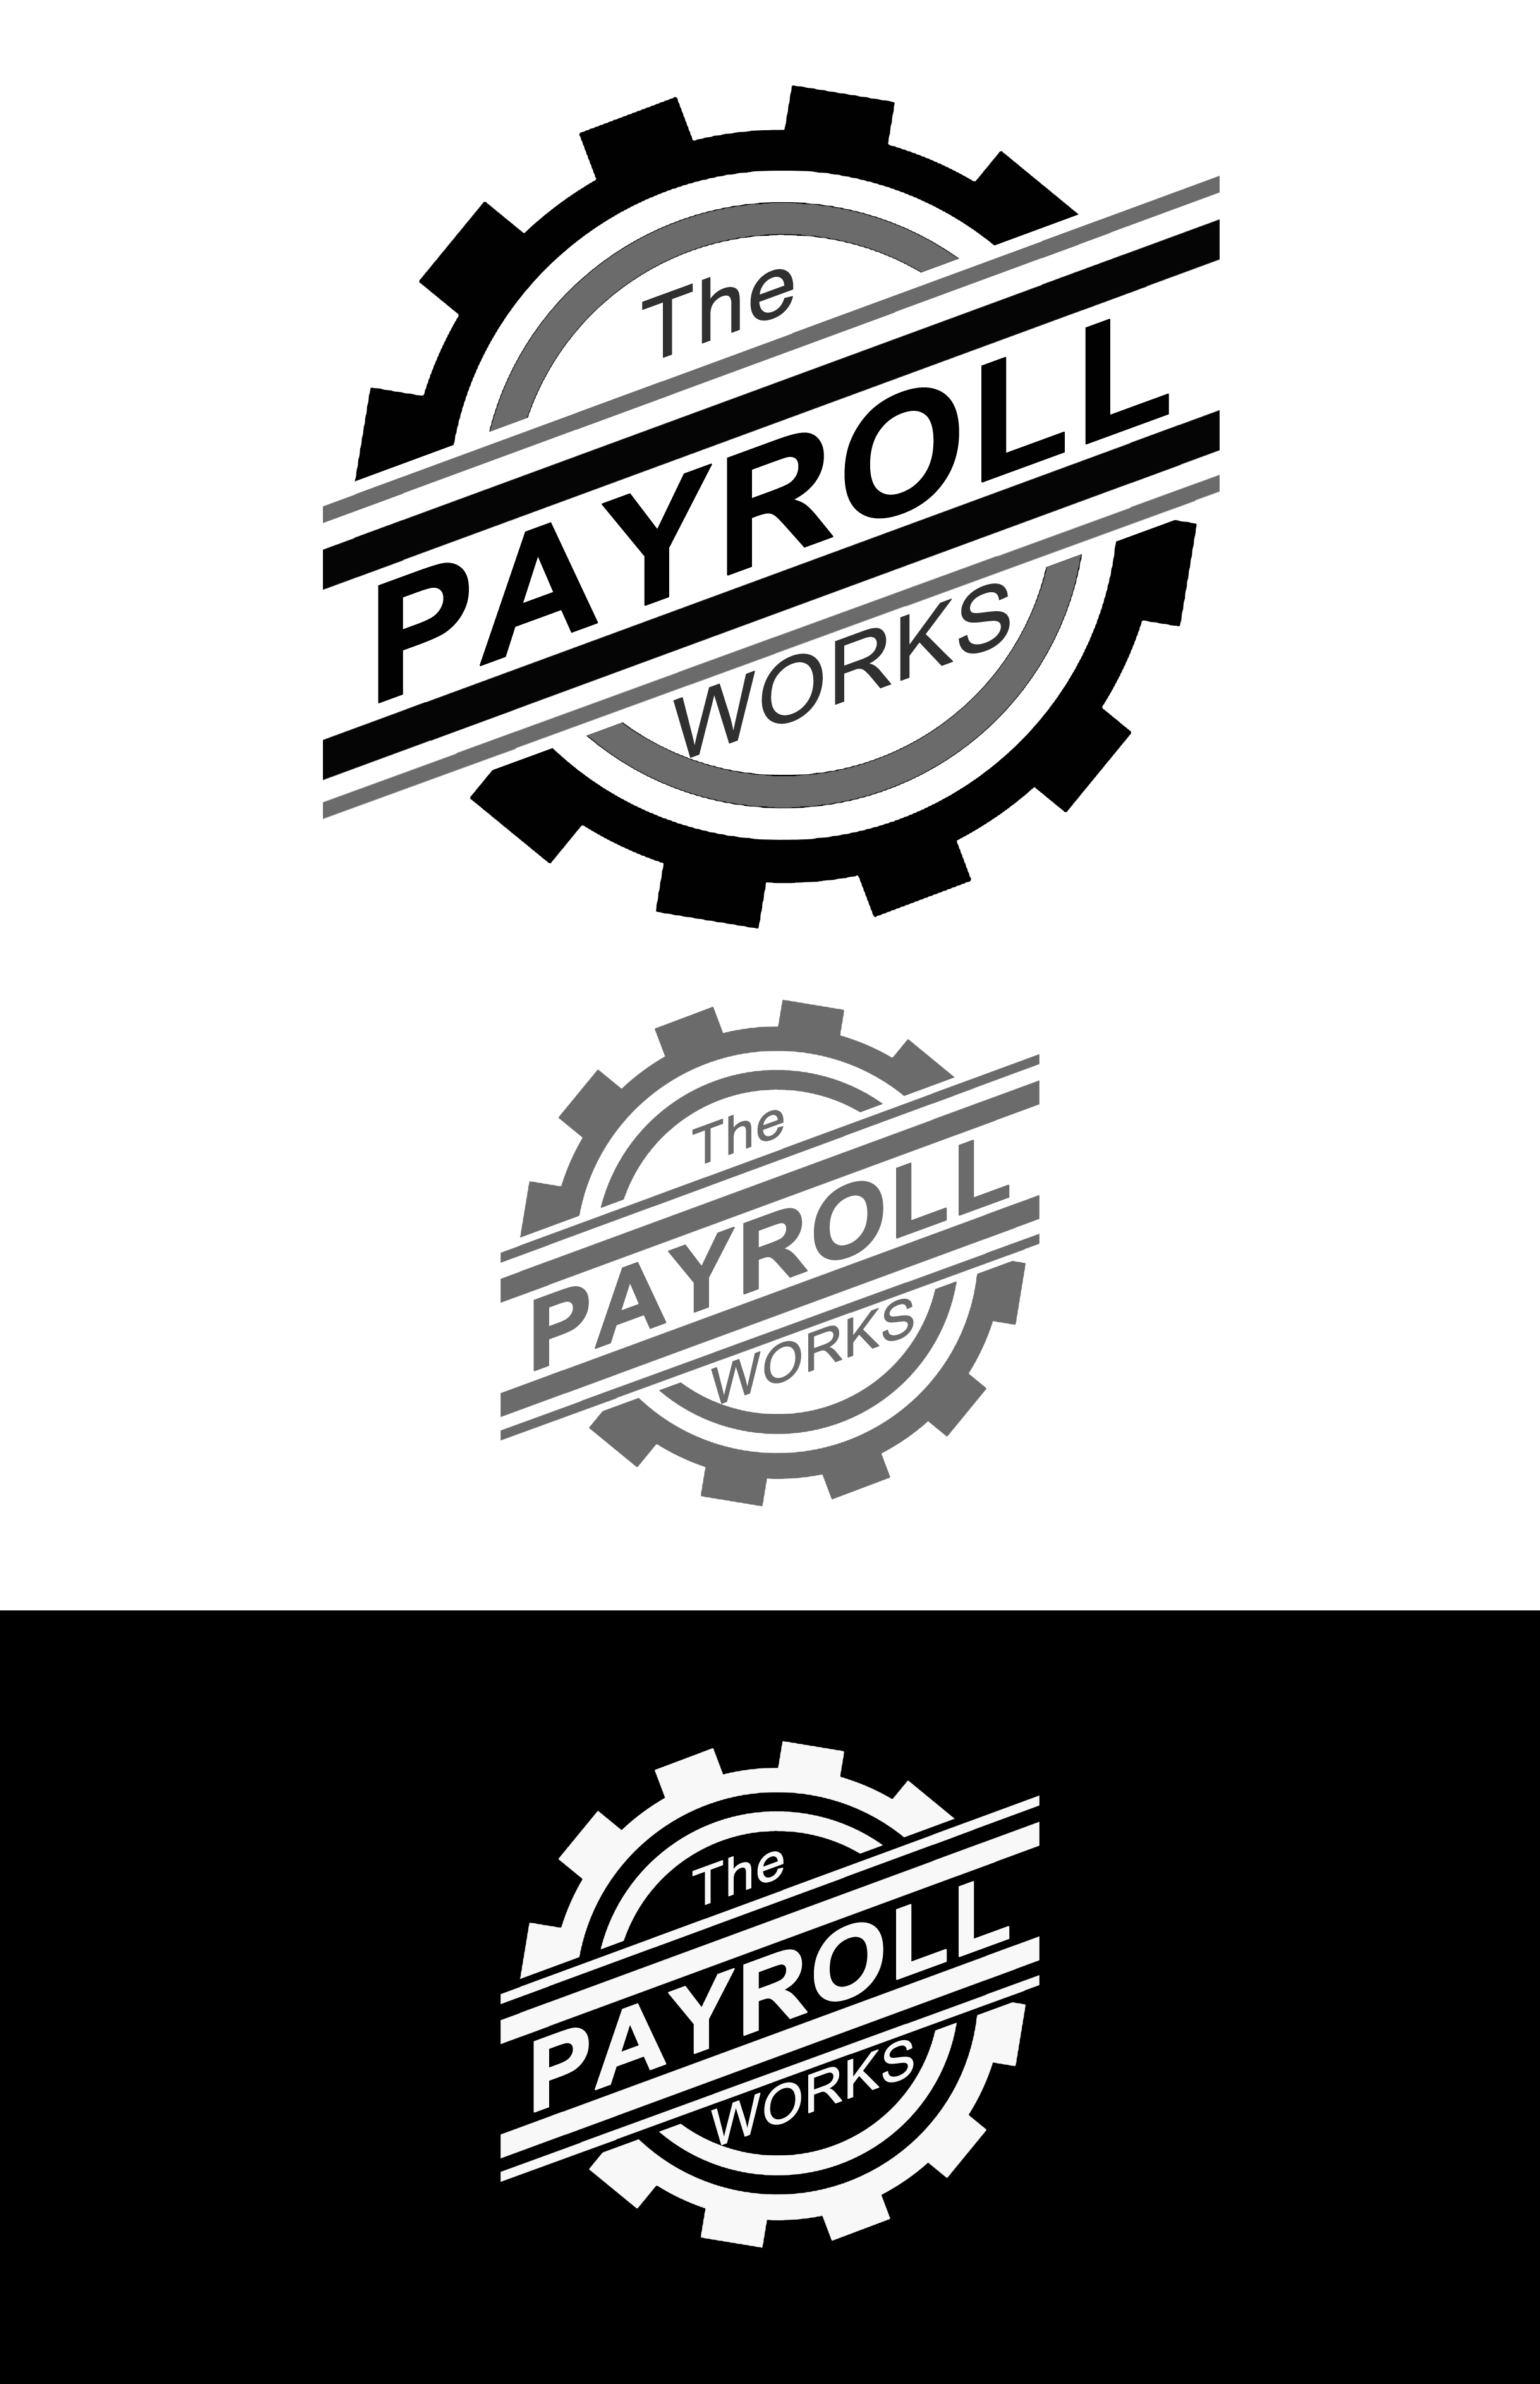 Logo Design by JSDESIGNGROUP - Entry No. 86 in the Logo Design Contest Captivating Logo Design for The Payroll Works.